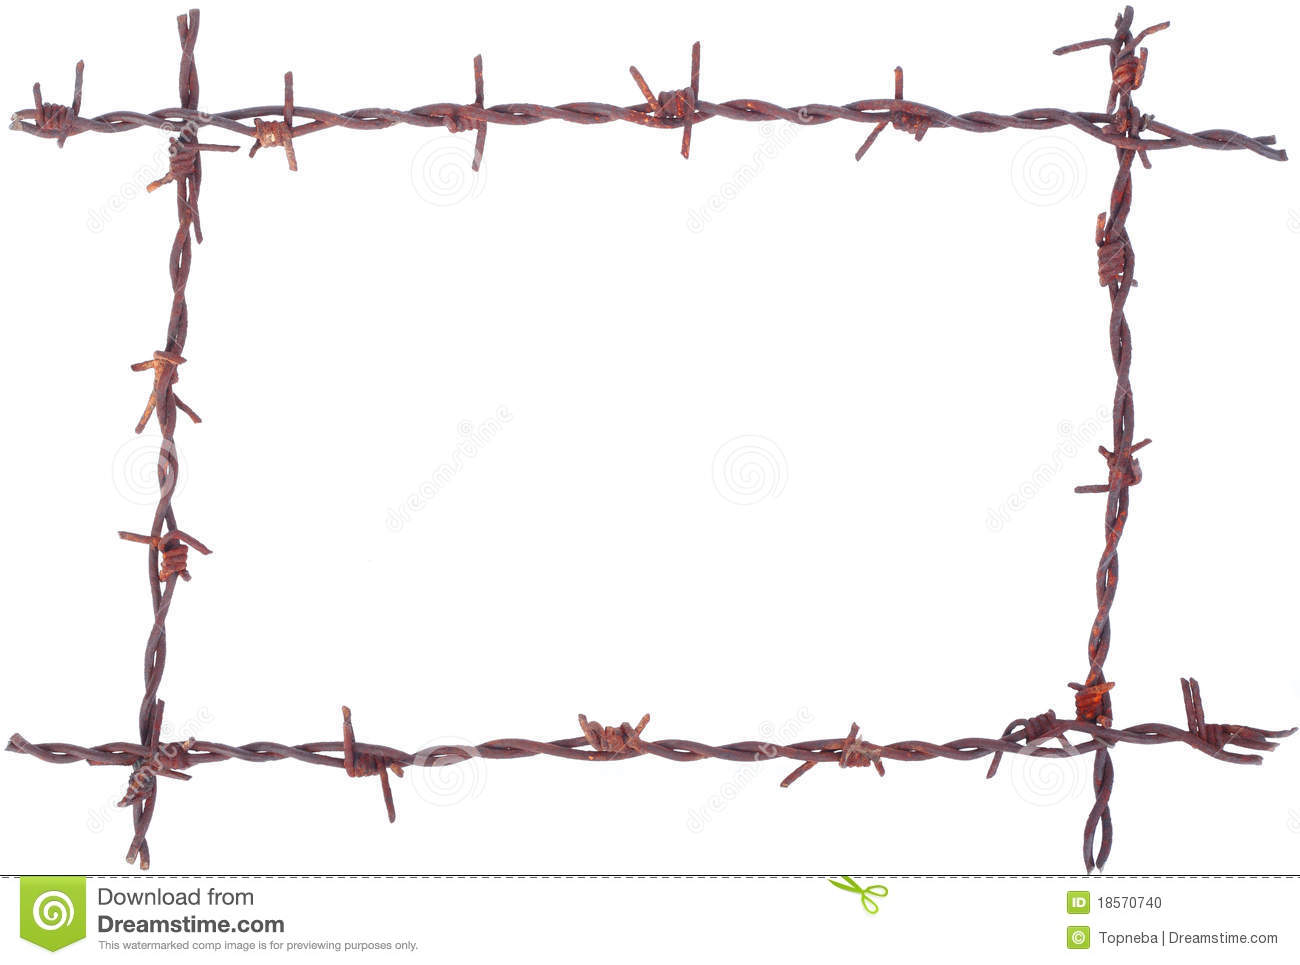 Barbed wire frame stock illustration. Illustration of barbwire - 632057